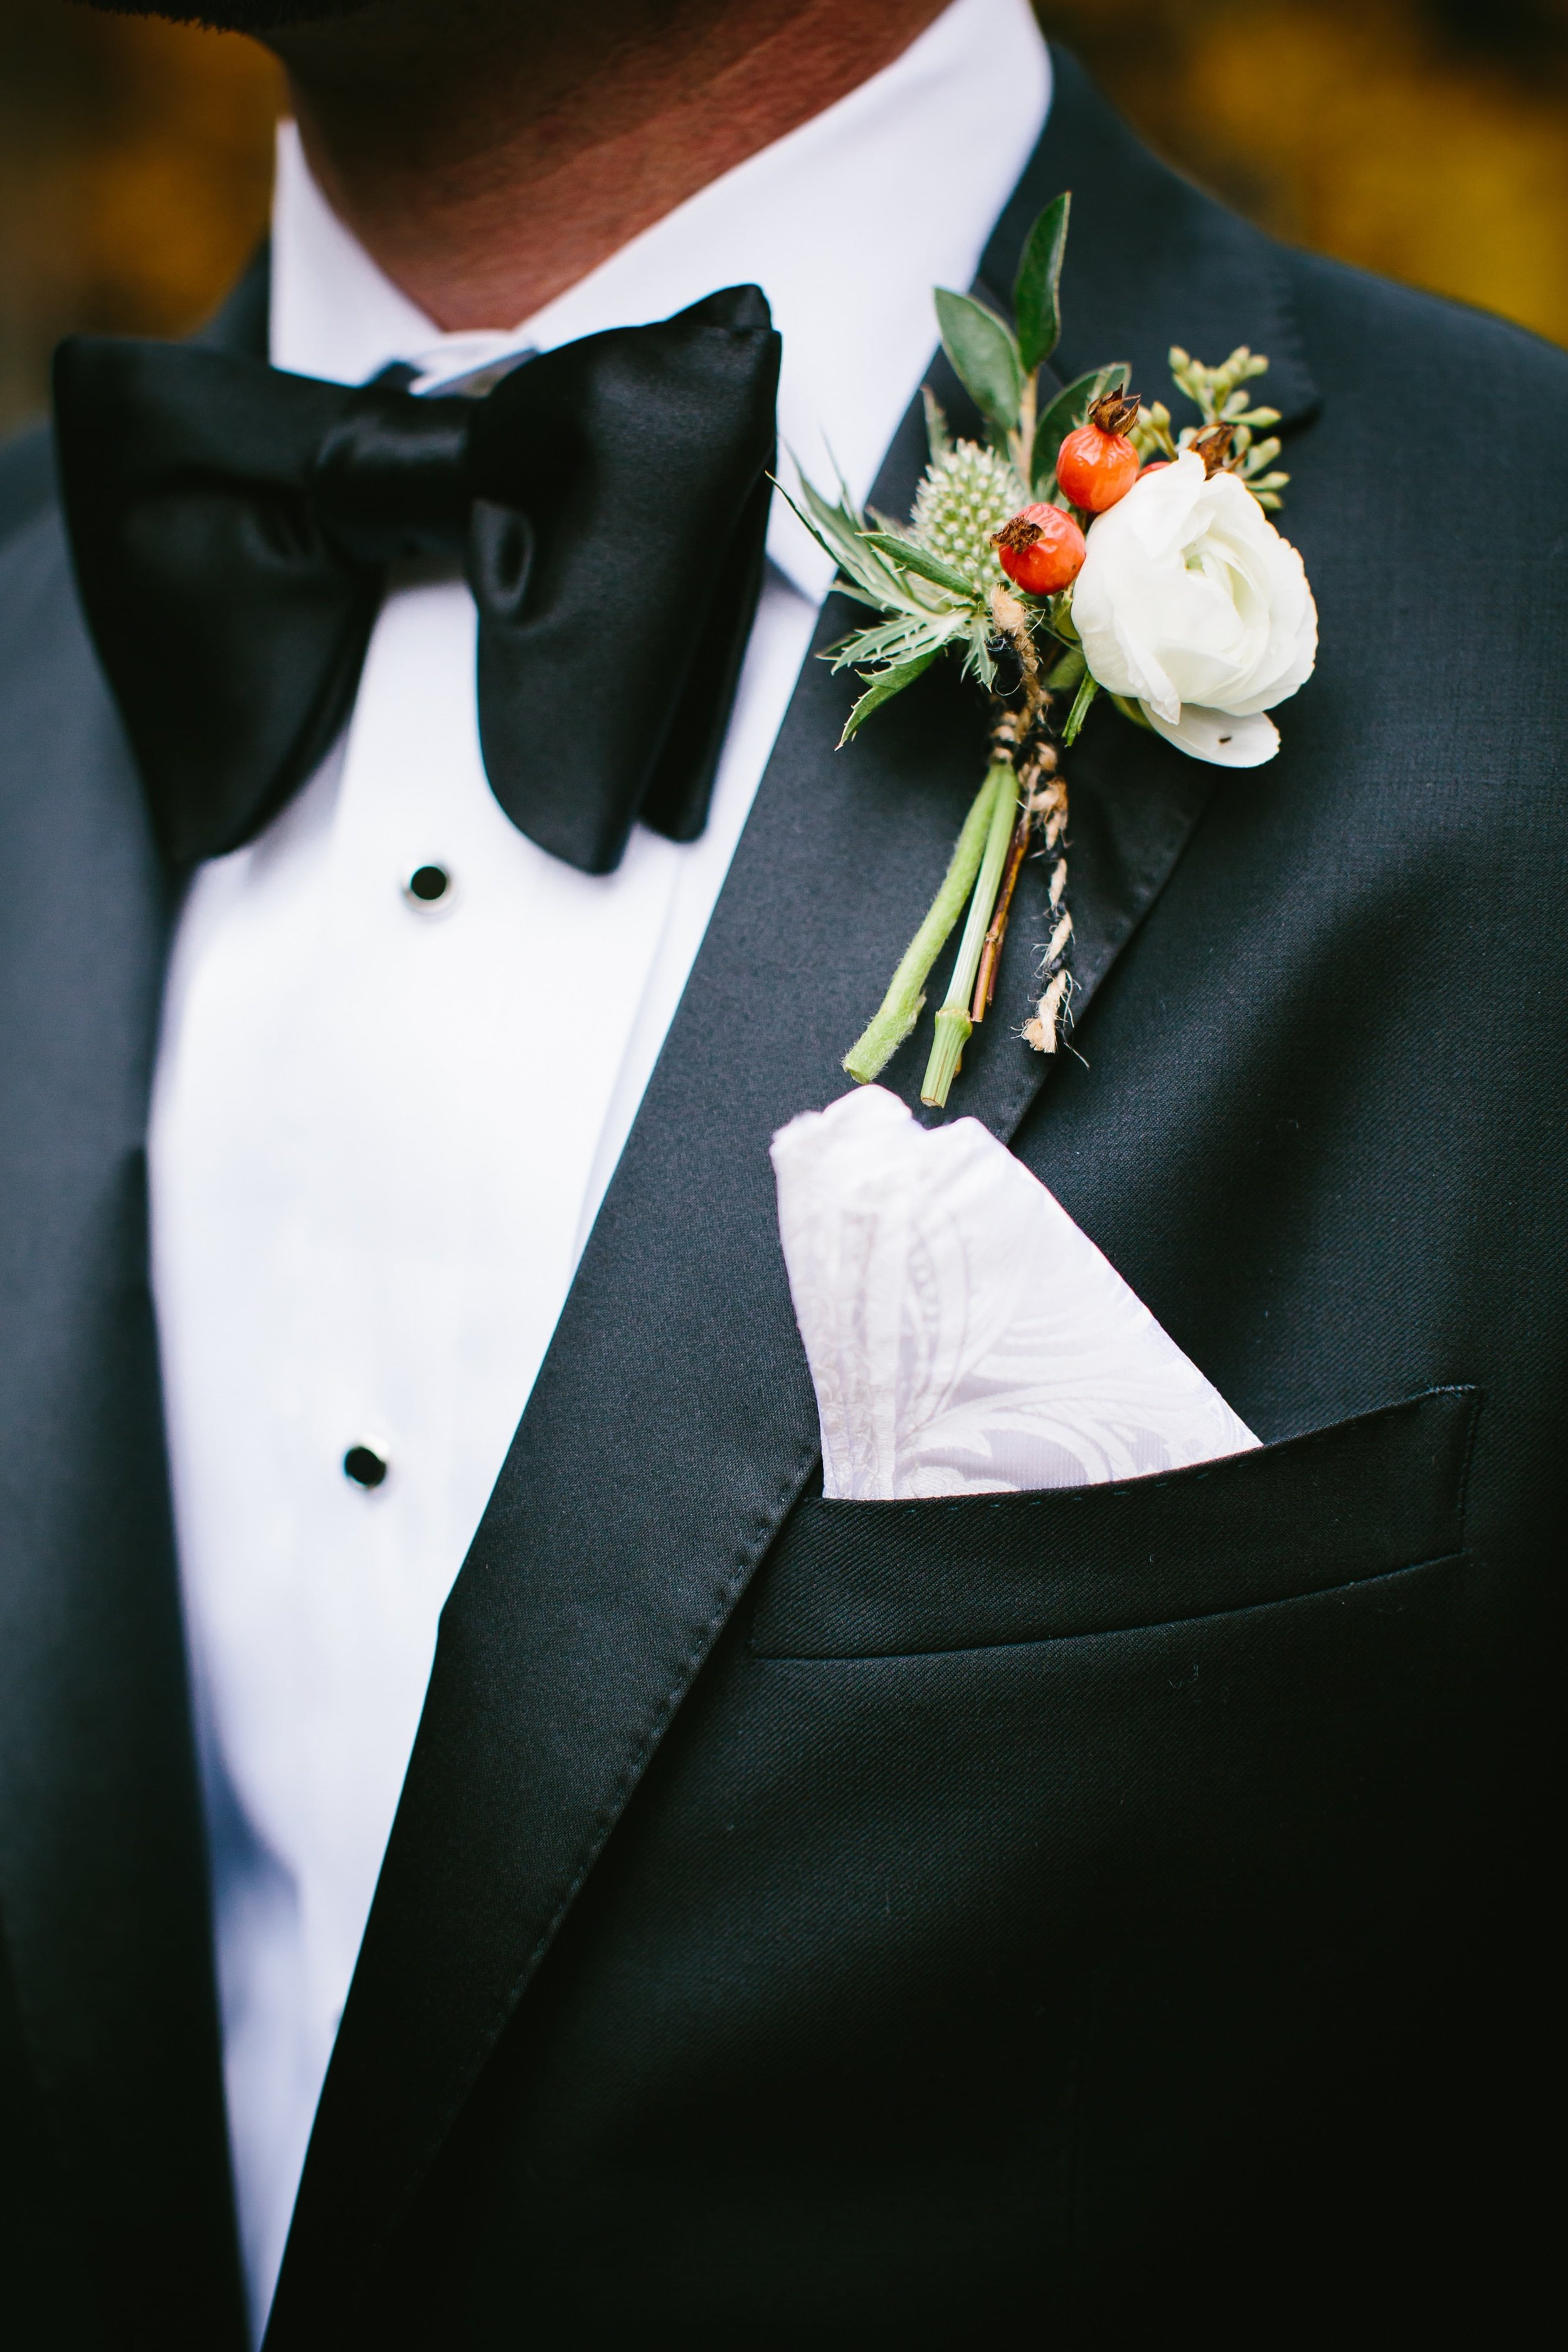 11 Richie's Tom Ford bowtie and custom tuxedo by Threadwell Clothiers